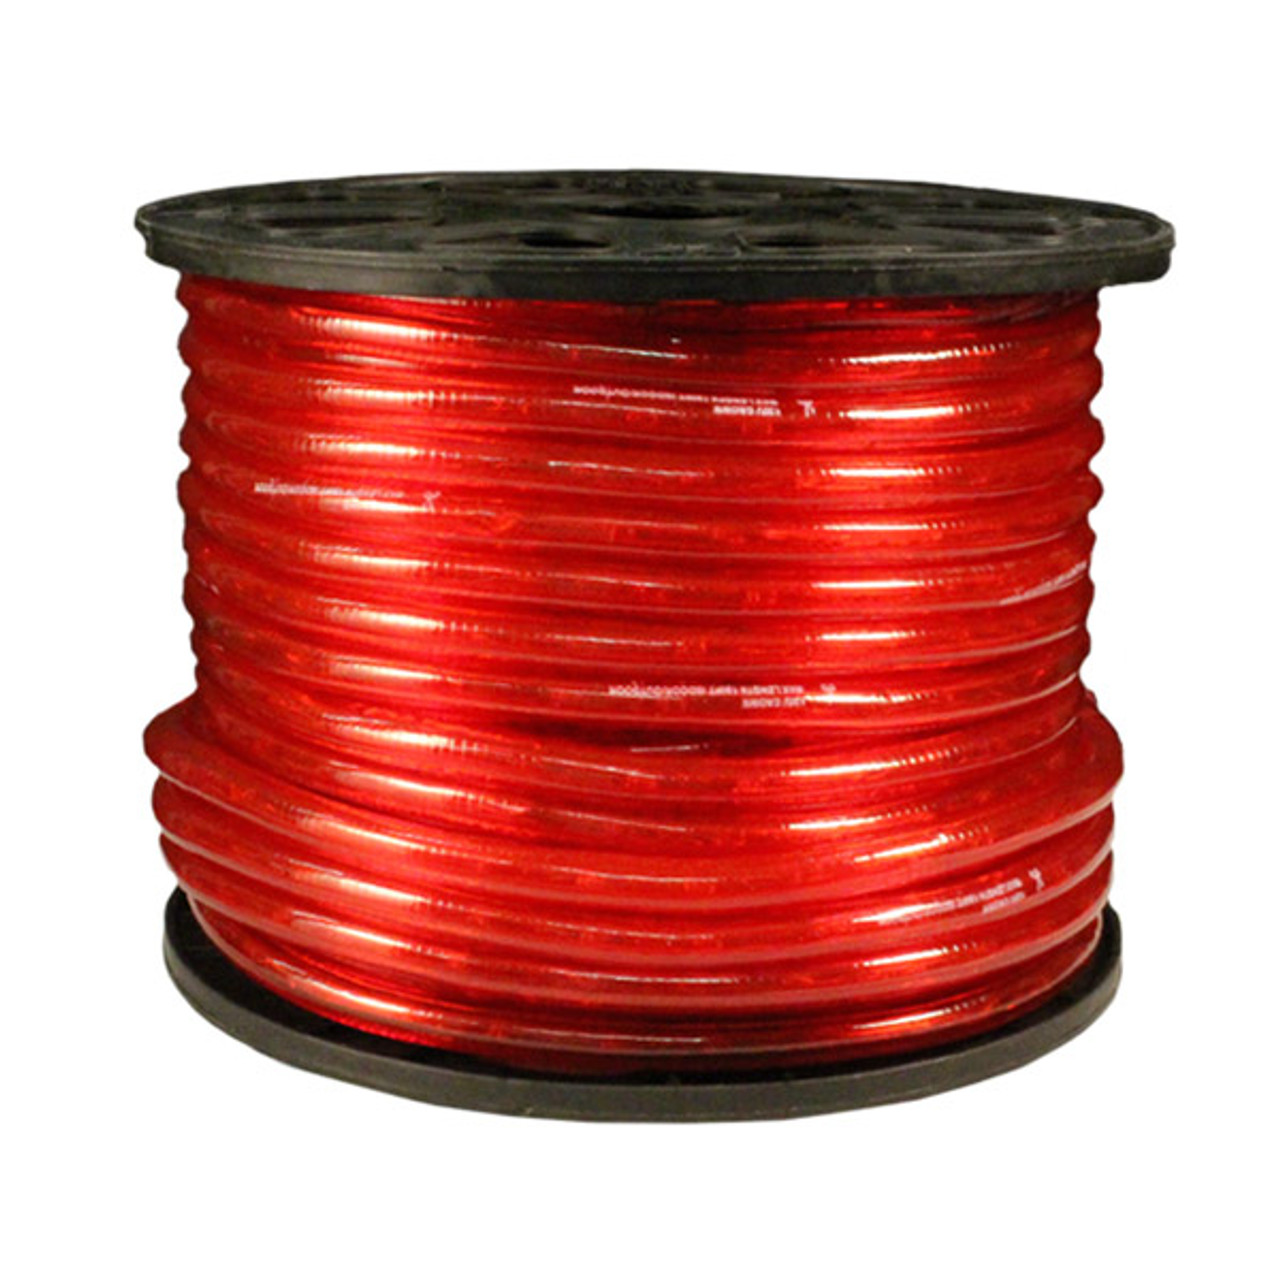 38 steady burn rope light by crown actionlighting 38 2 wire incandescent rope light aloadofball Image collections